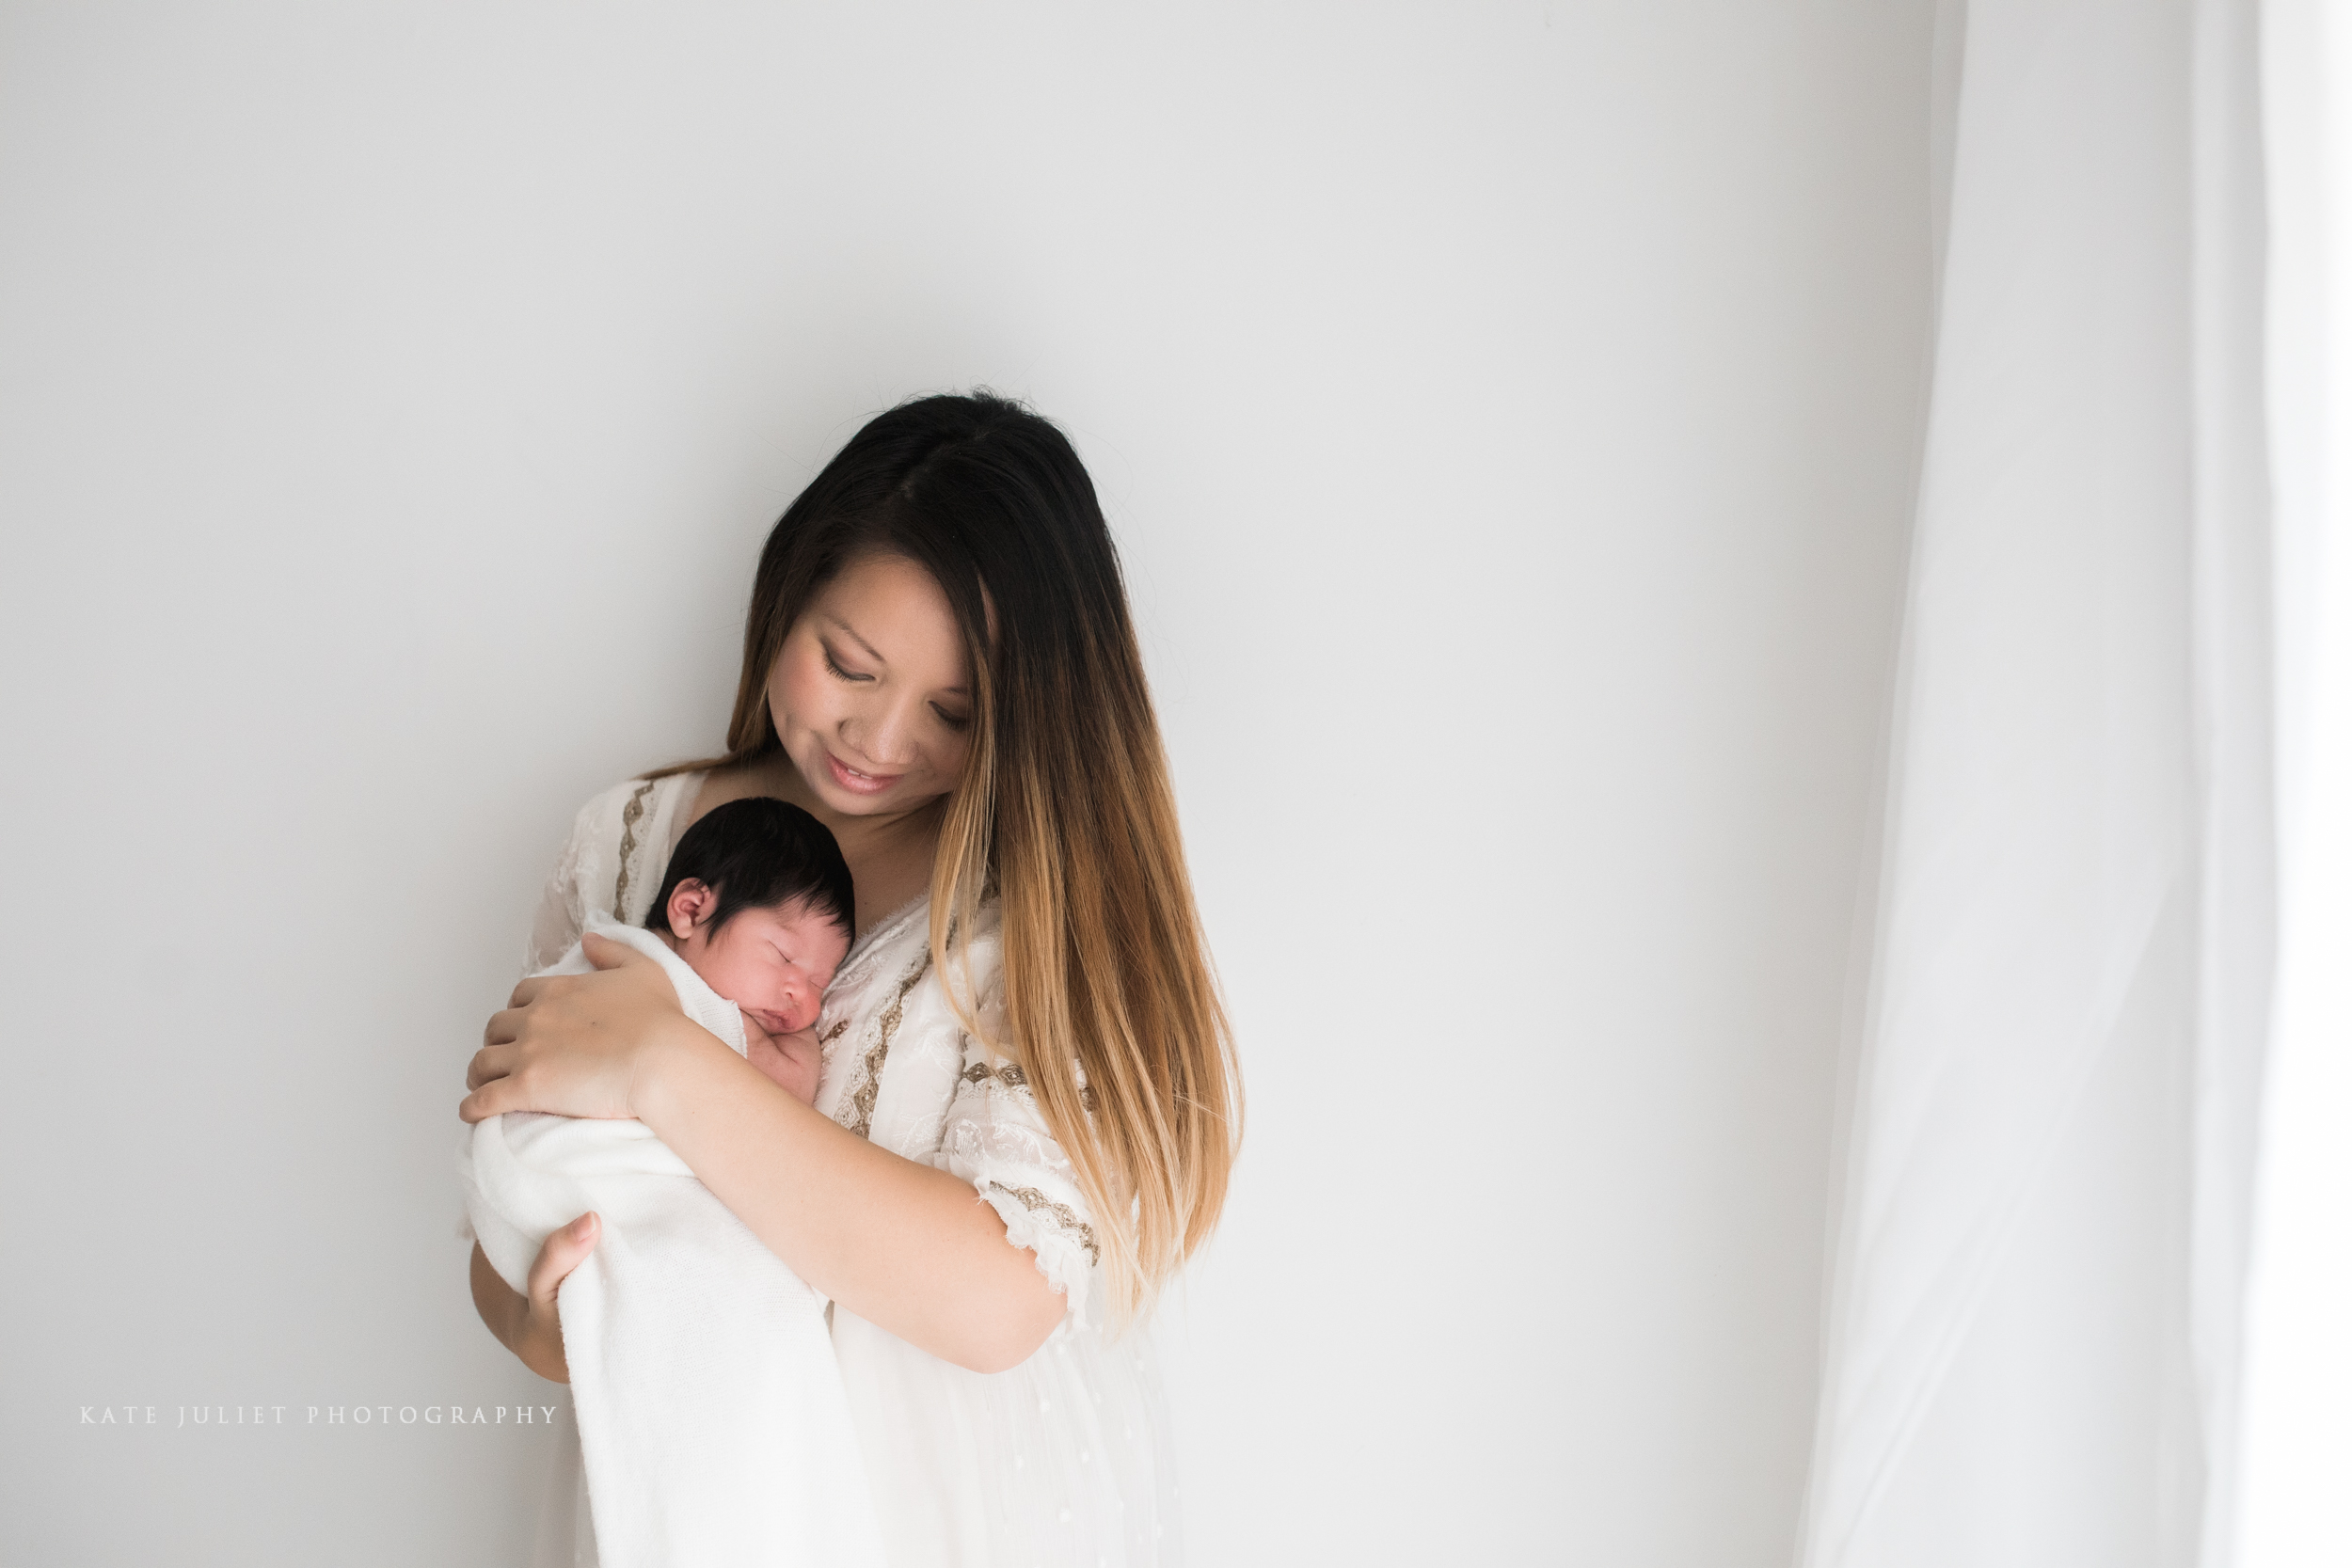 Fairfax County VA Baby Photographer | Kate Juliet Photography